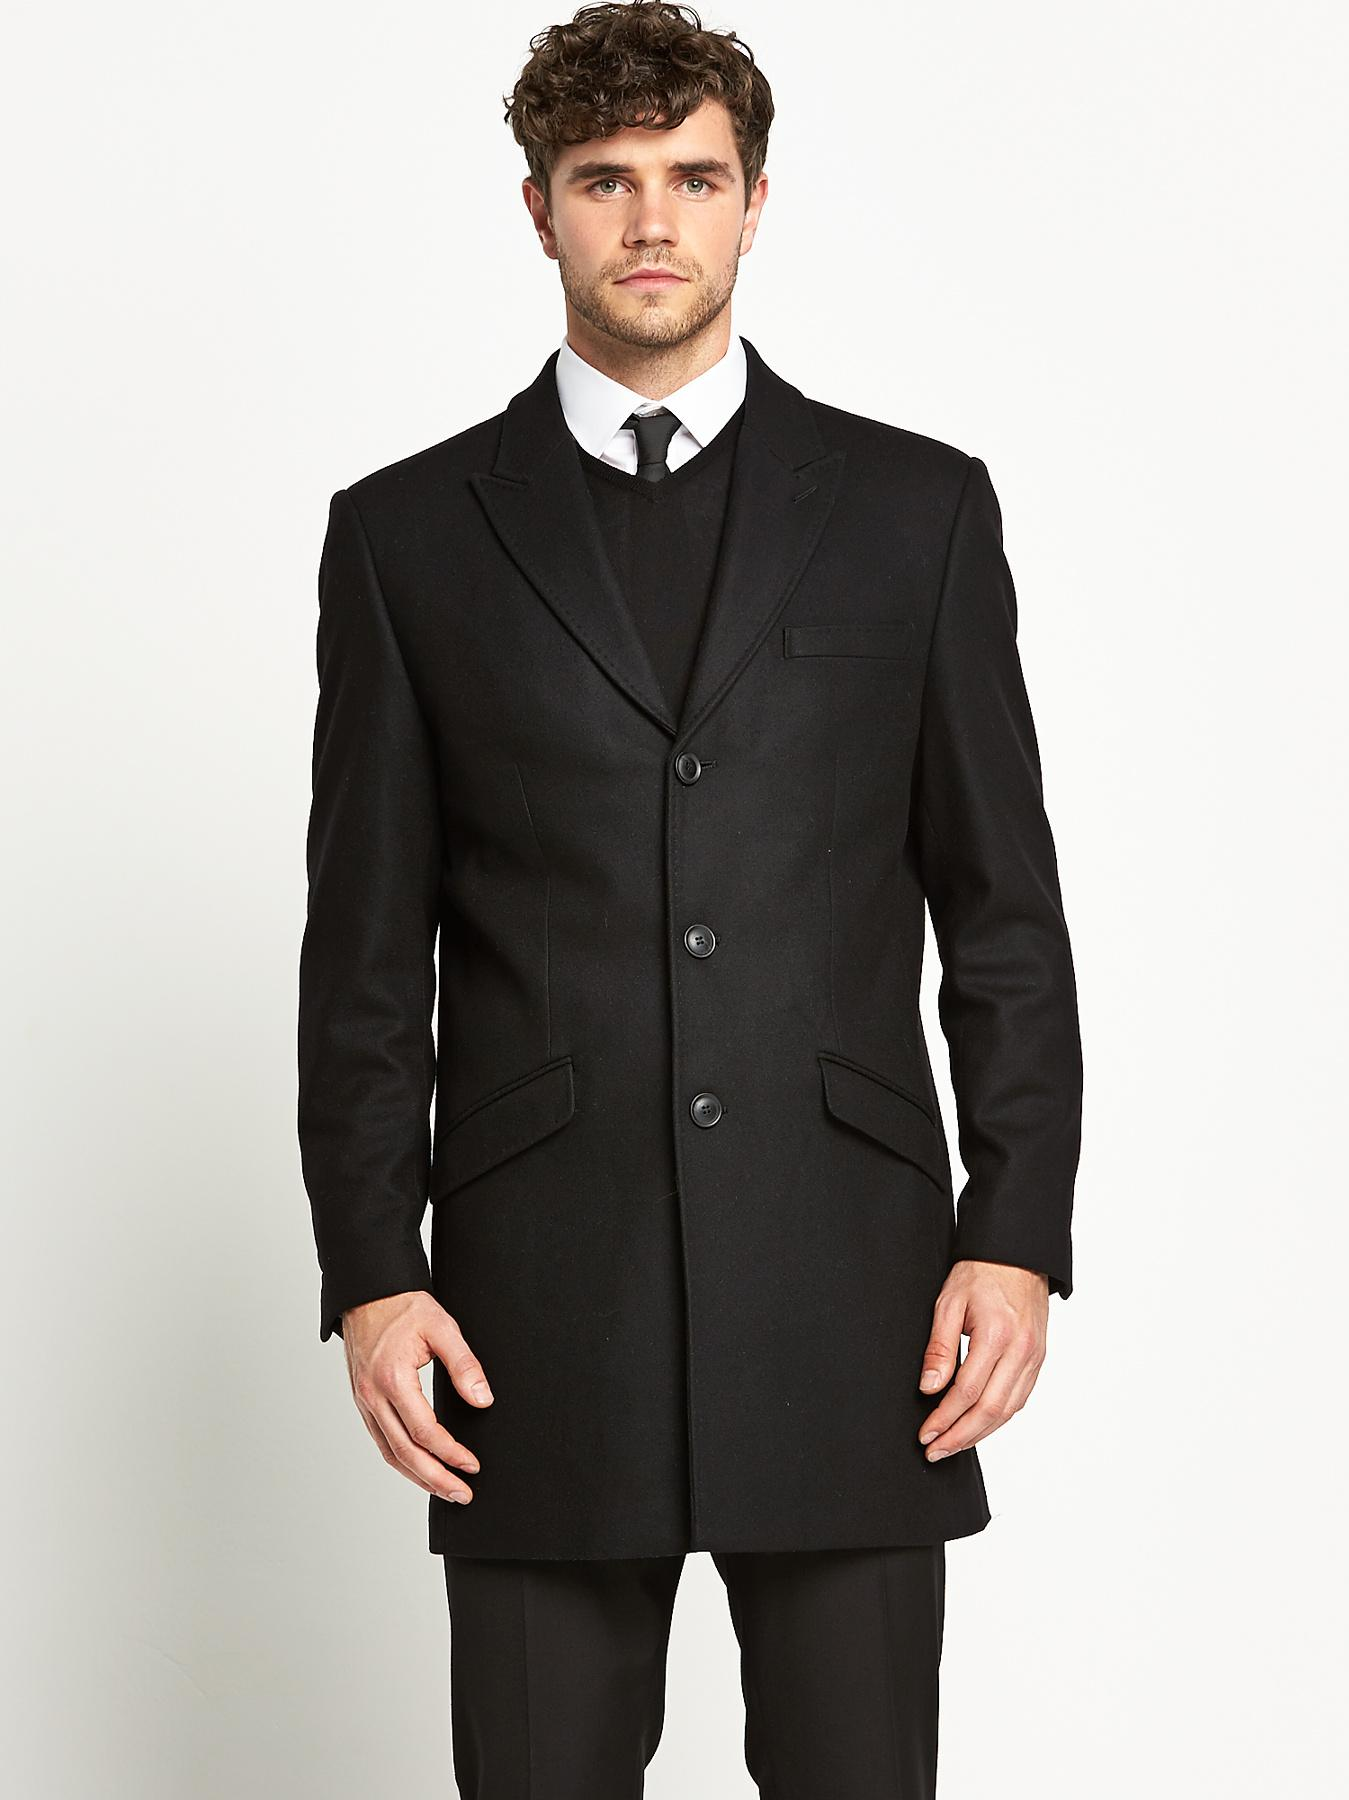 Mens Single Breasted Tailored Coat, Black